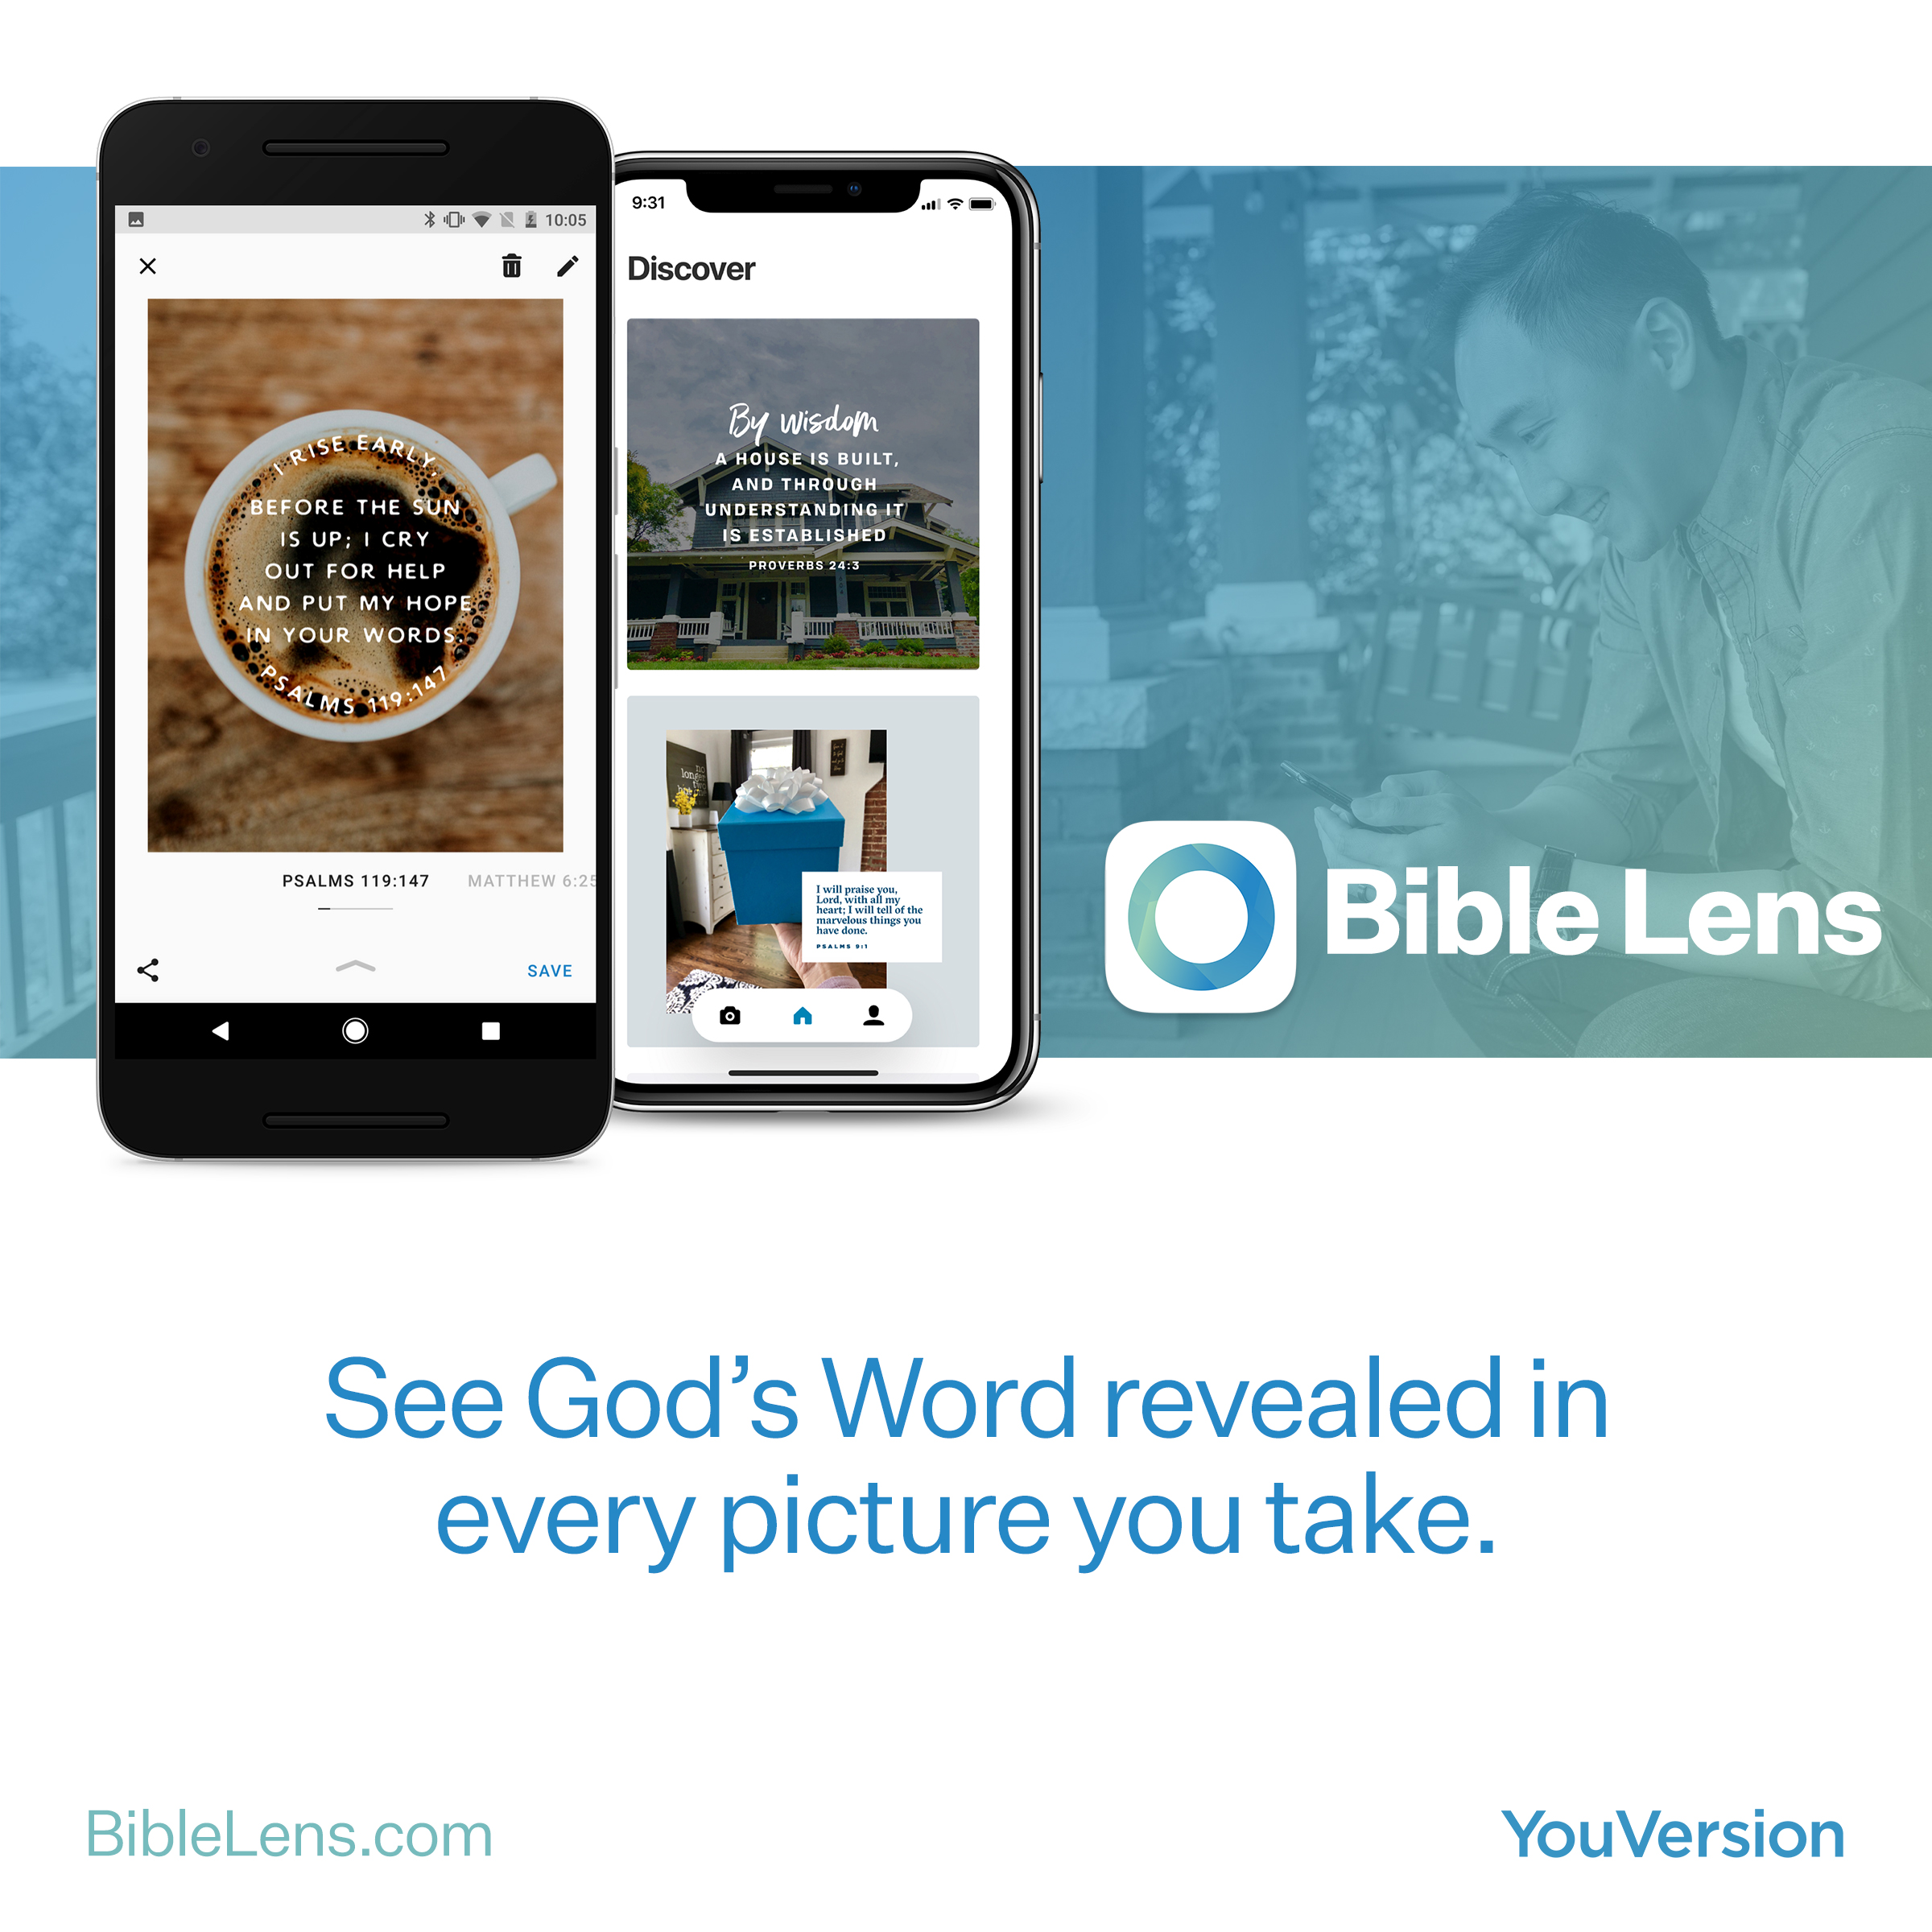 Bible Lens - See God's Word revealed in every picture you take.